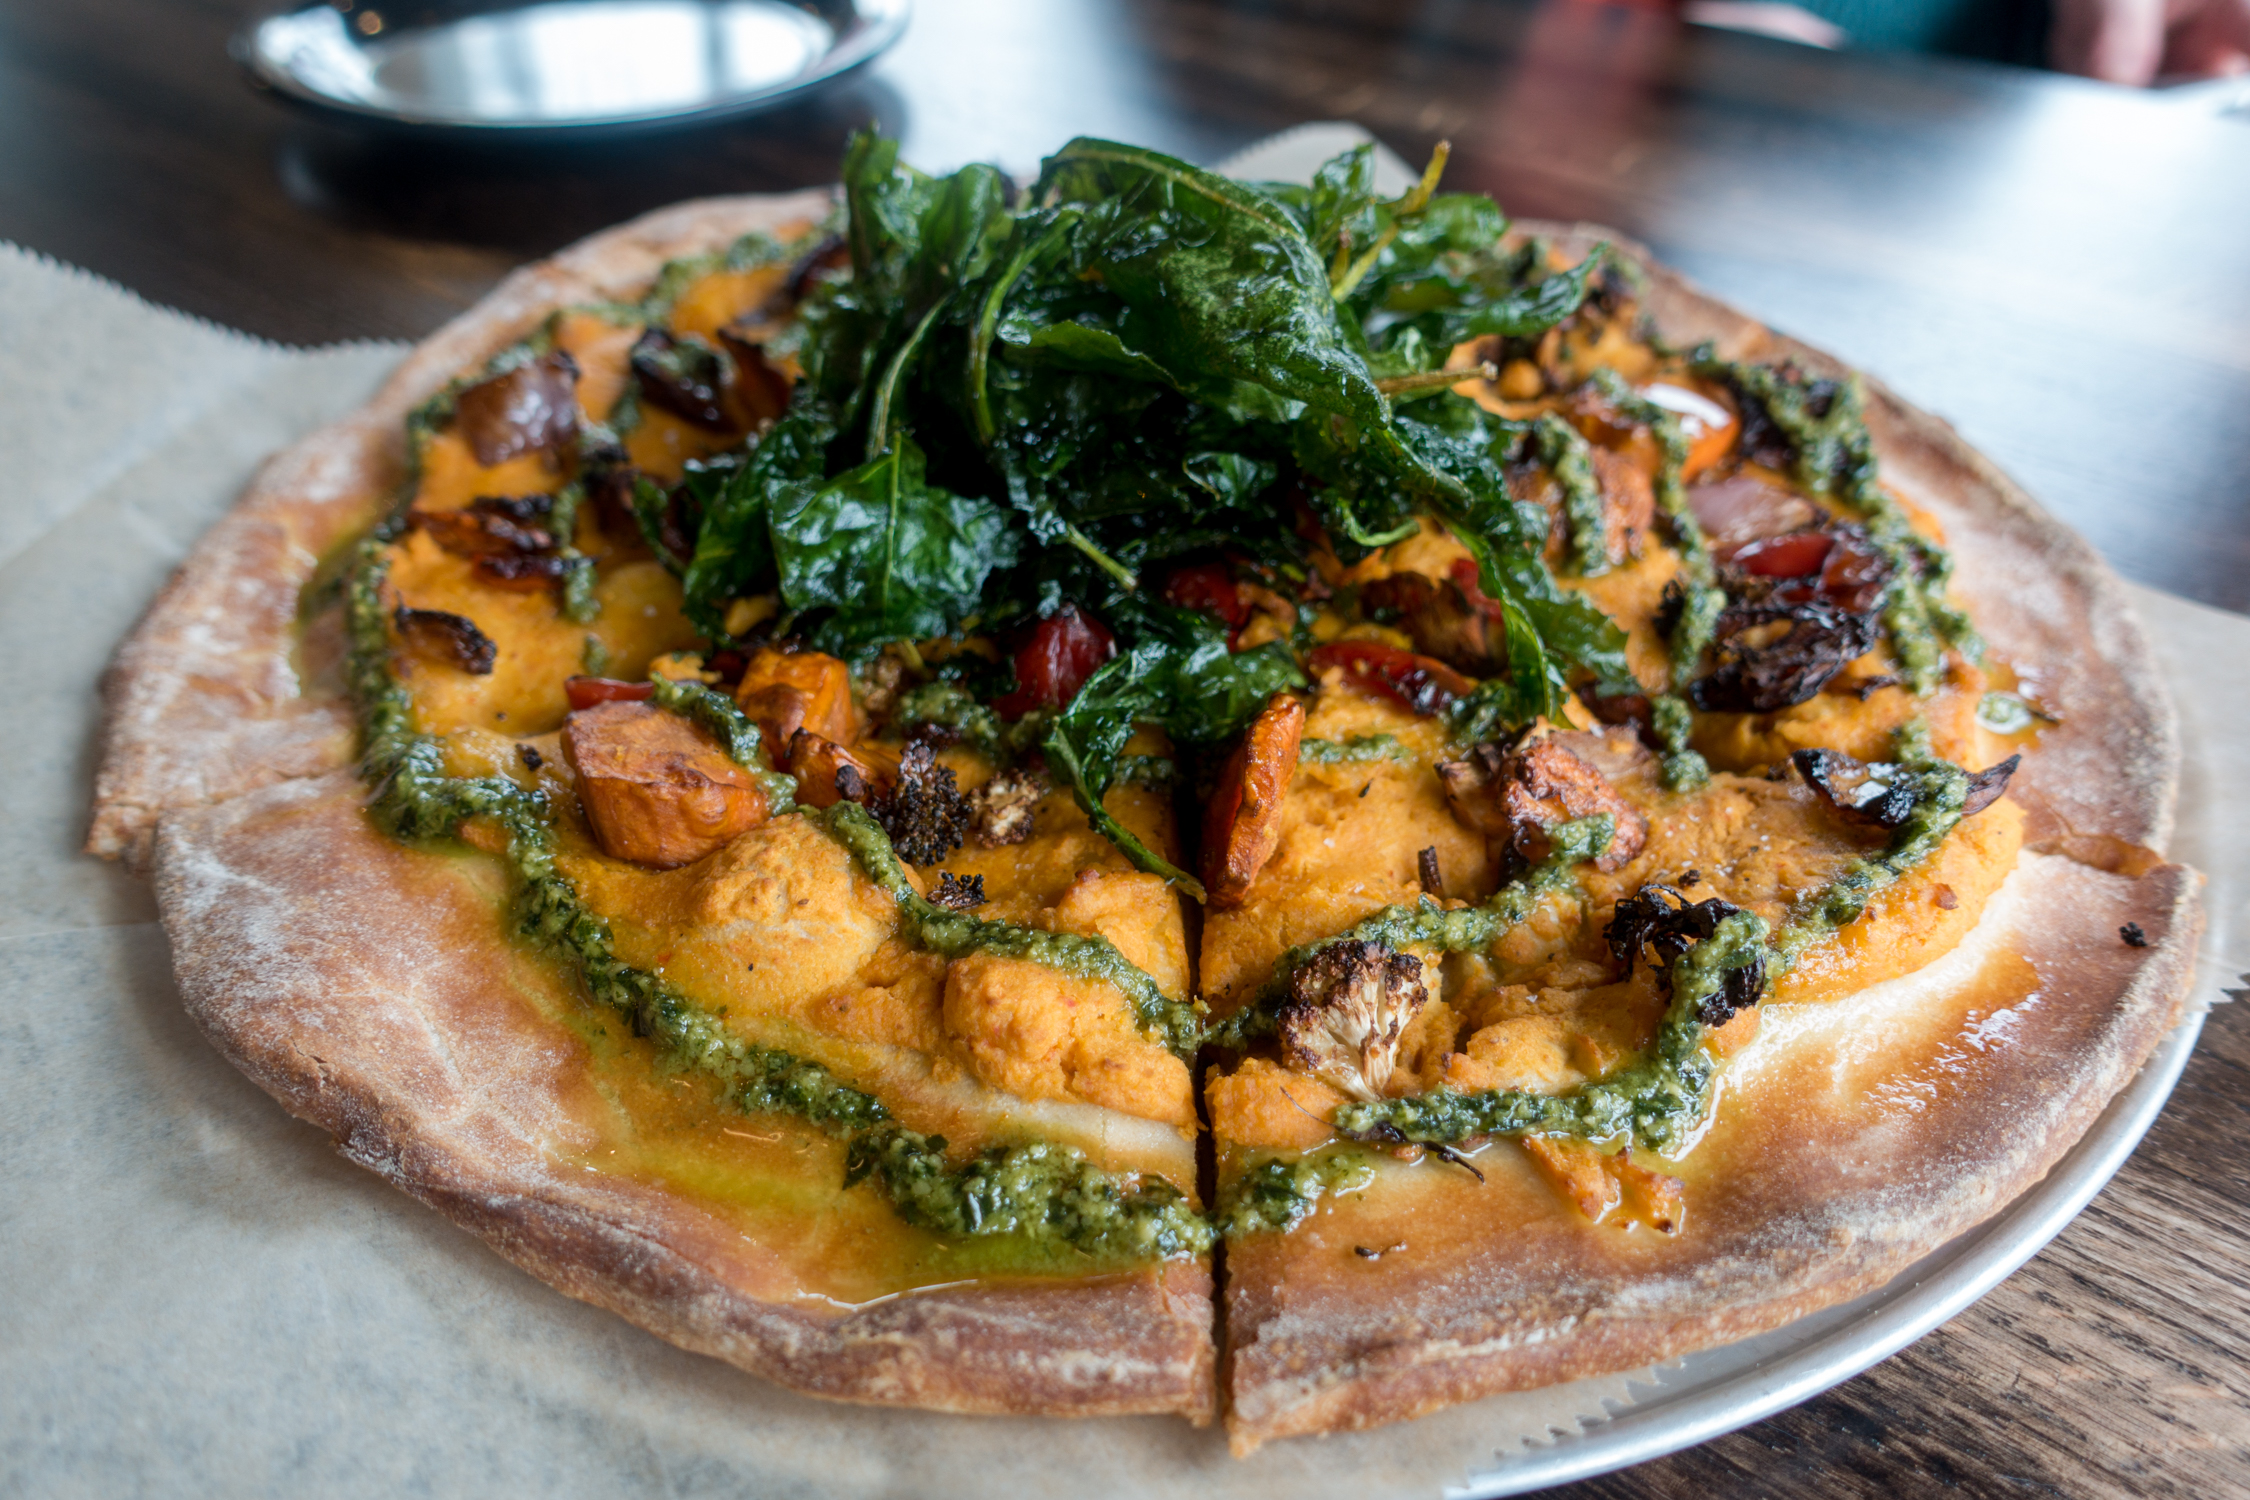 Whether you live in Grand Rapids or our planning a trip to this great Midwest city, I hope that this list of the Best Places for Vegan Pizza In Grand Rapids is helpful in your quest to find delicious vegan pizza! #vegan #travel #pizza #grandrapids